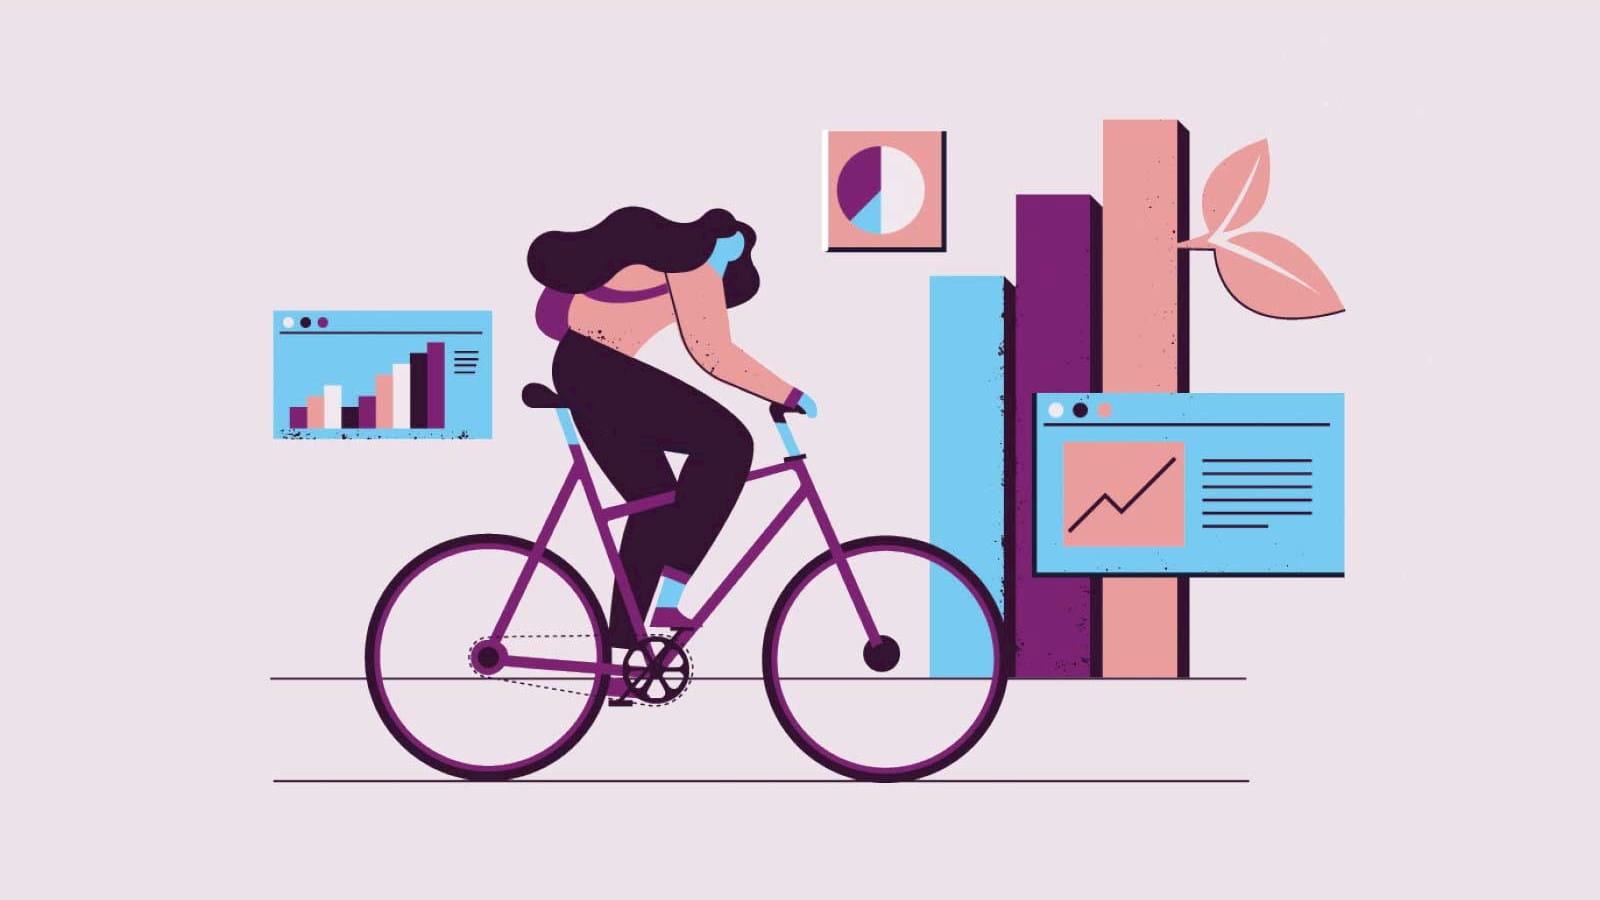 Illustration of a person on a bicycle with graphs in the background